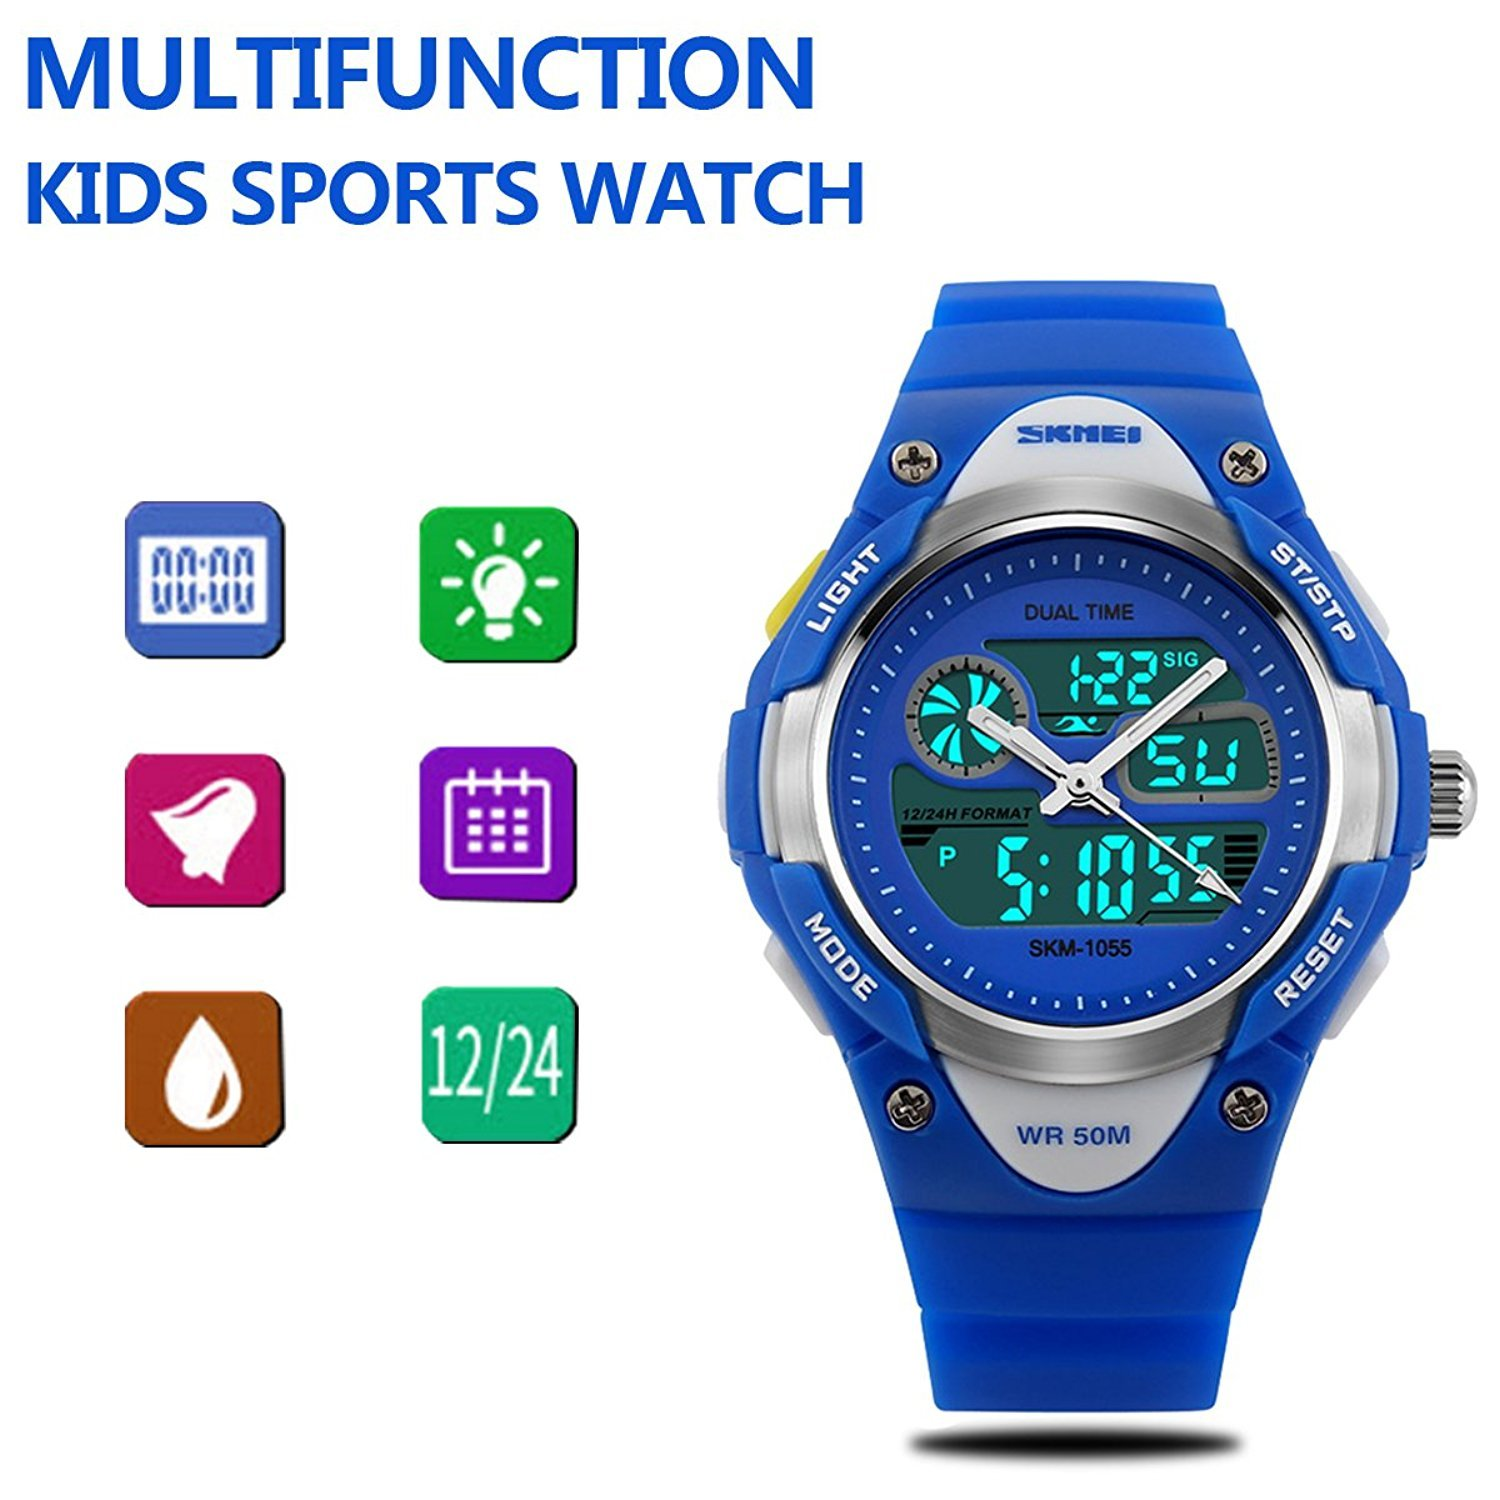 Girls Watches Digital Analog Dual Time Display Watch for Teens Youth Waterproof Rose by AMCAS (Image #4)